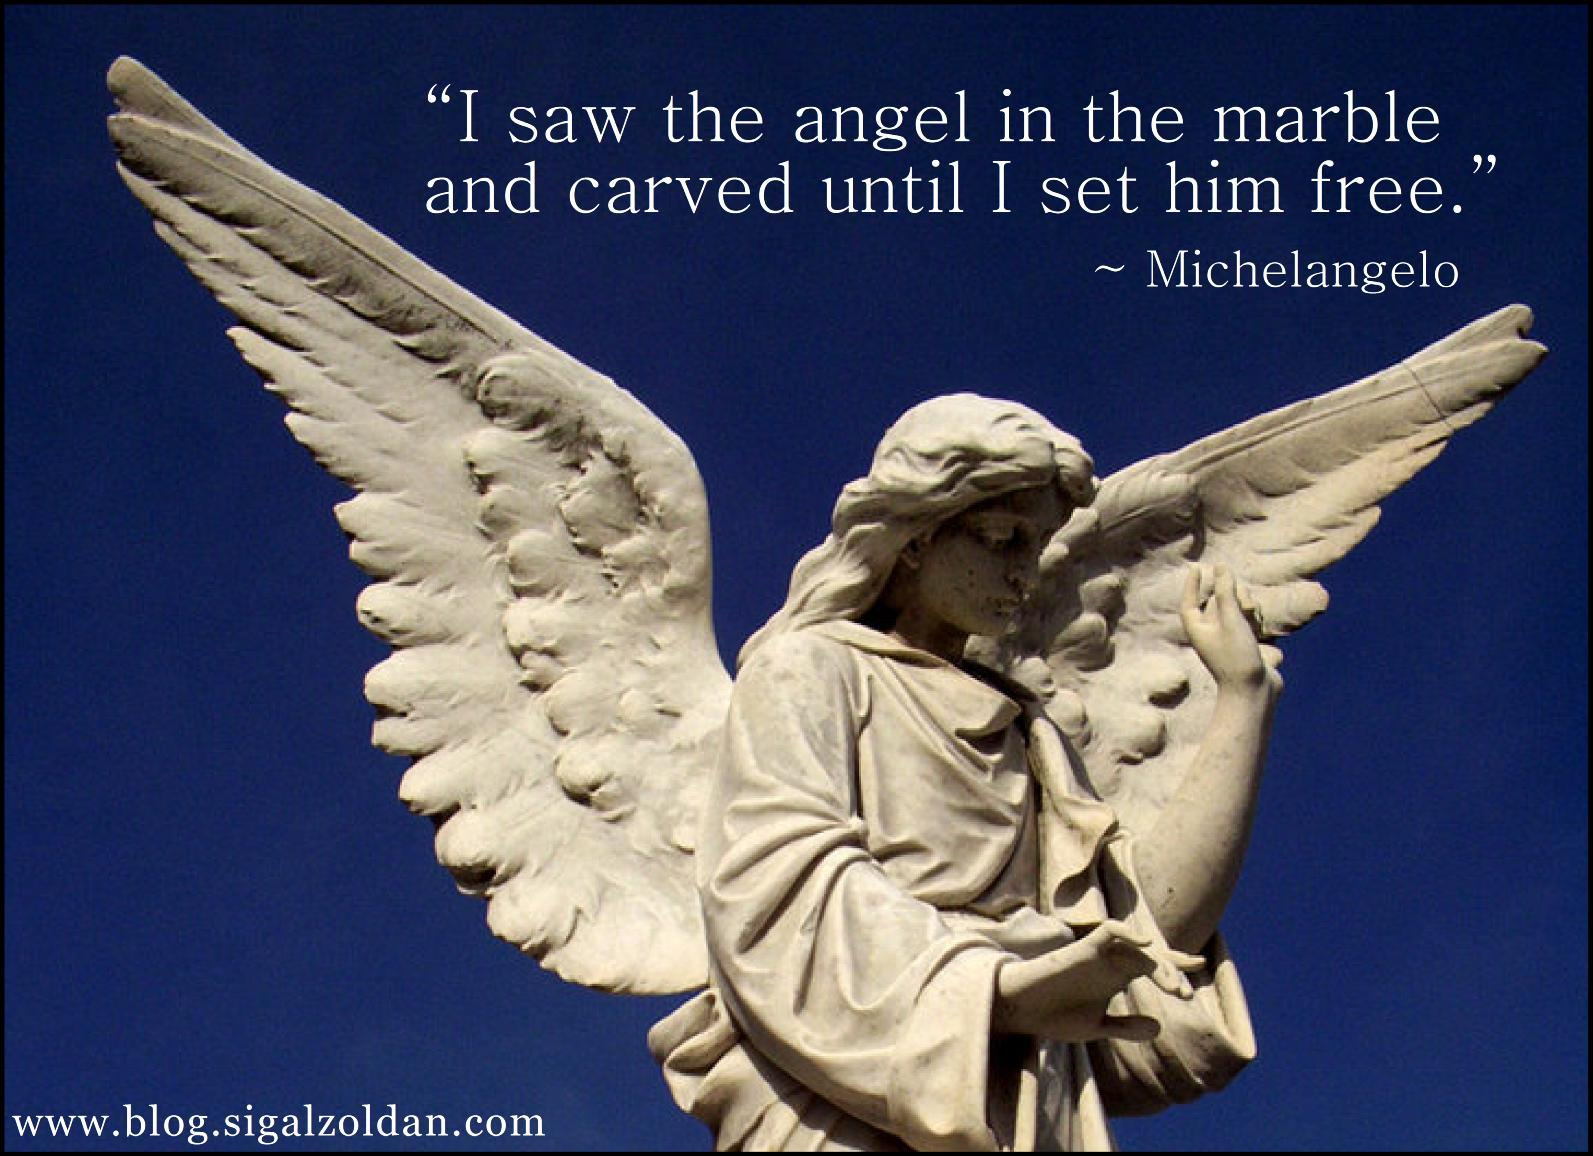 carving the angel